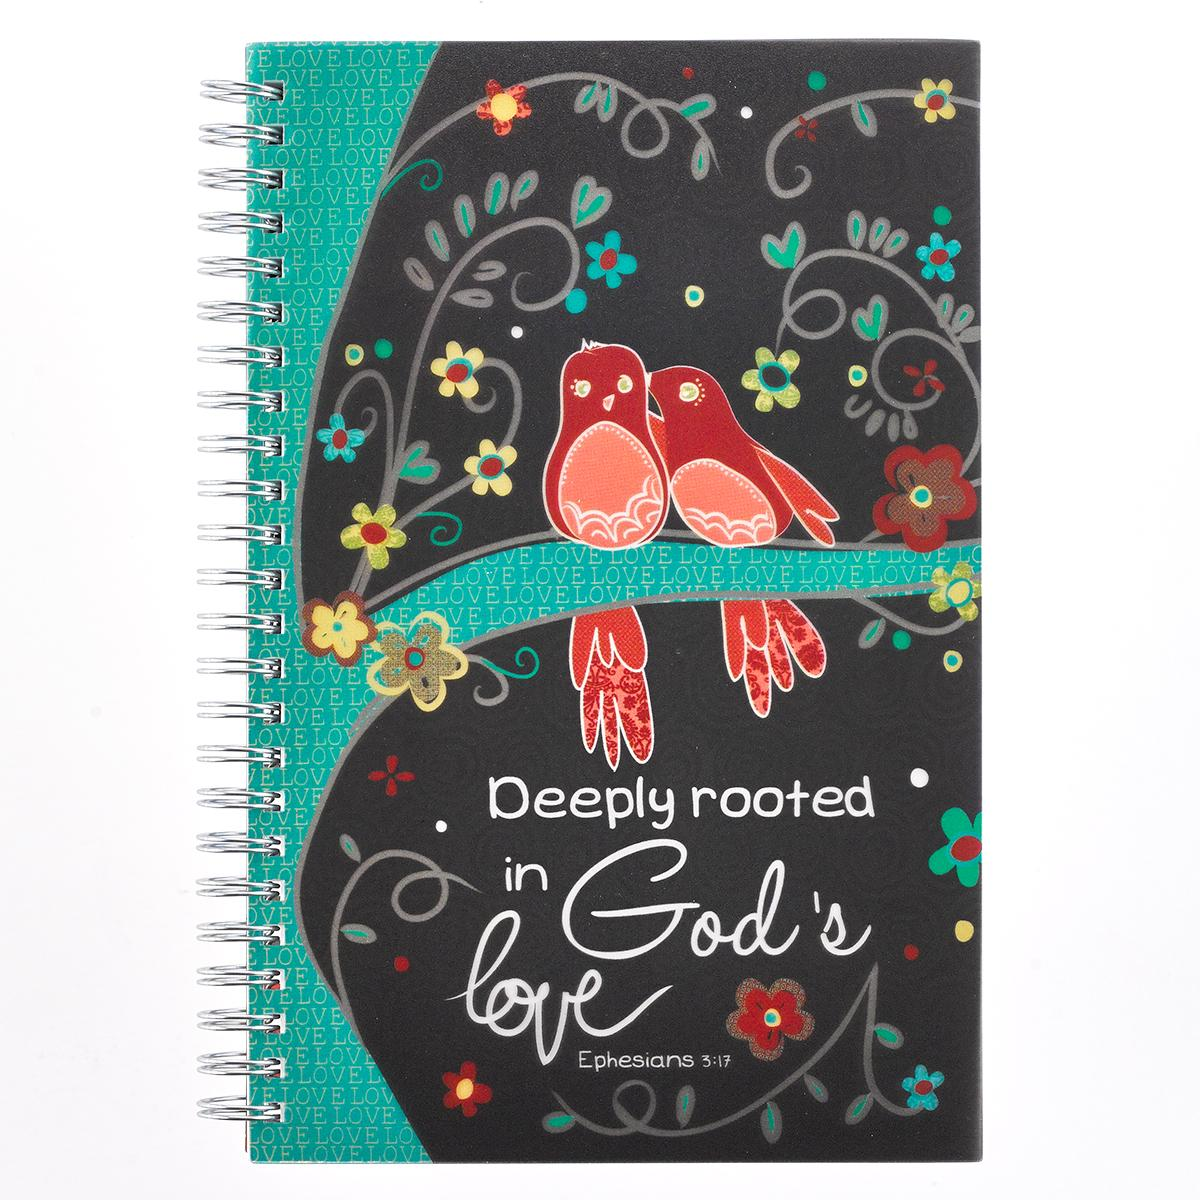 Deeply Rooted in God's Love: Ephesians 3:17 (Hardcover)